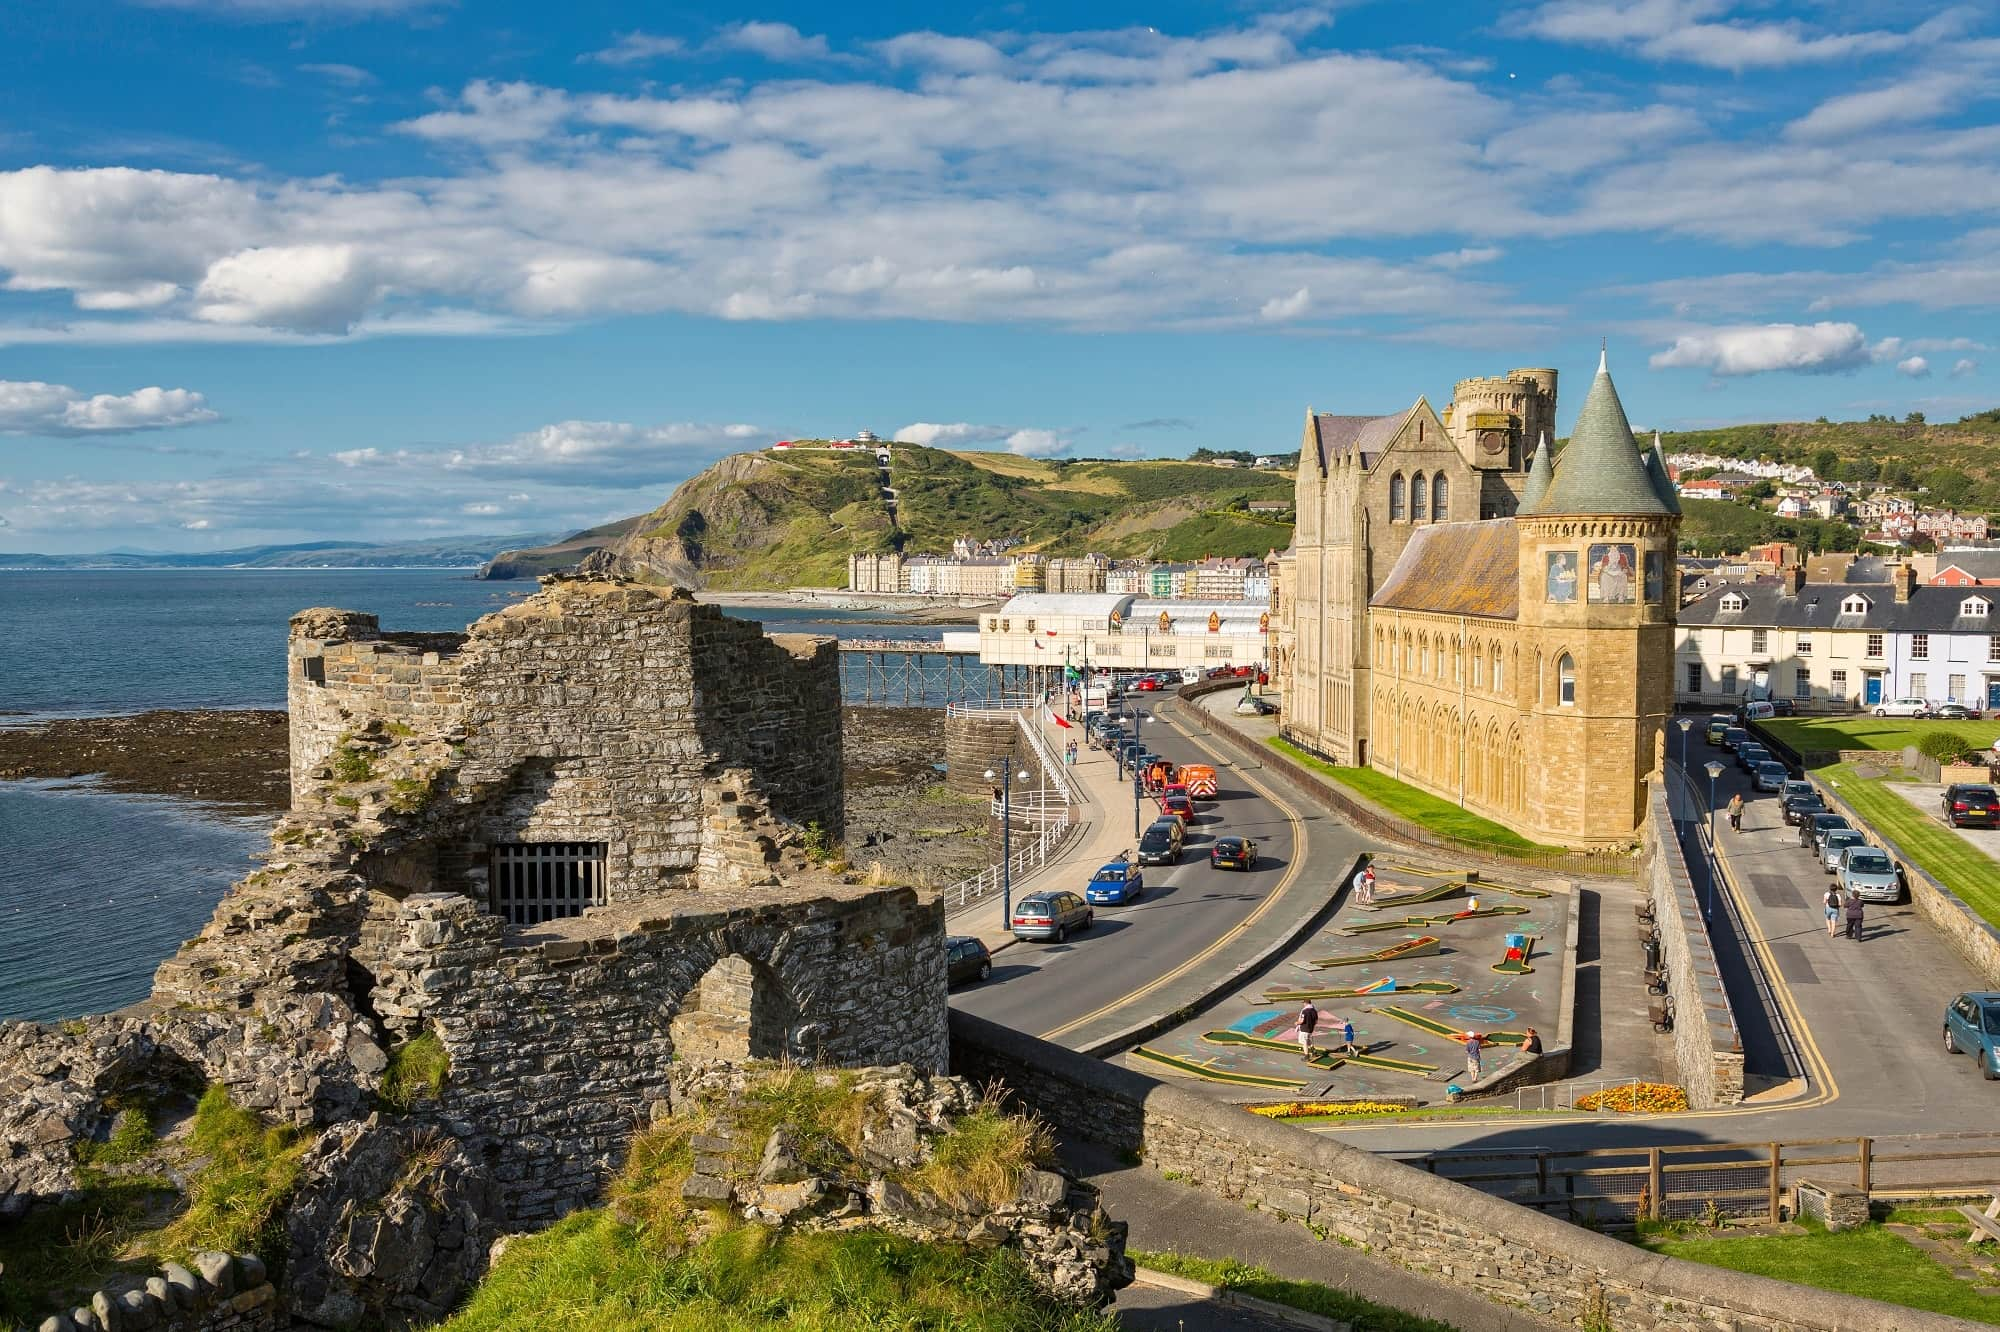 Image of town and church scene in Aberystwyth